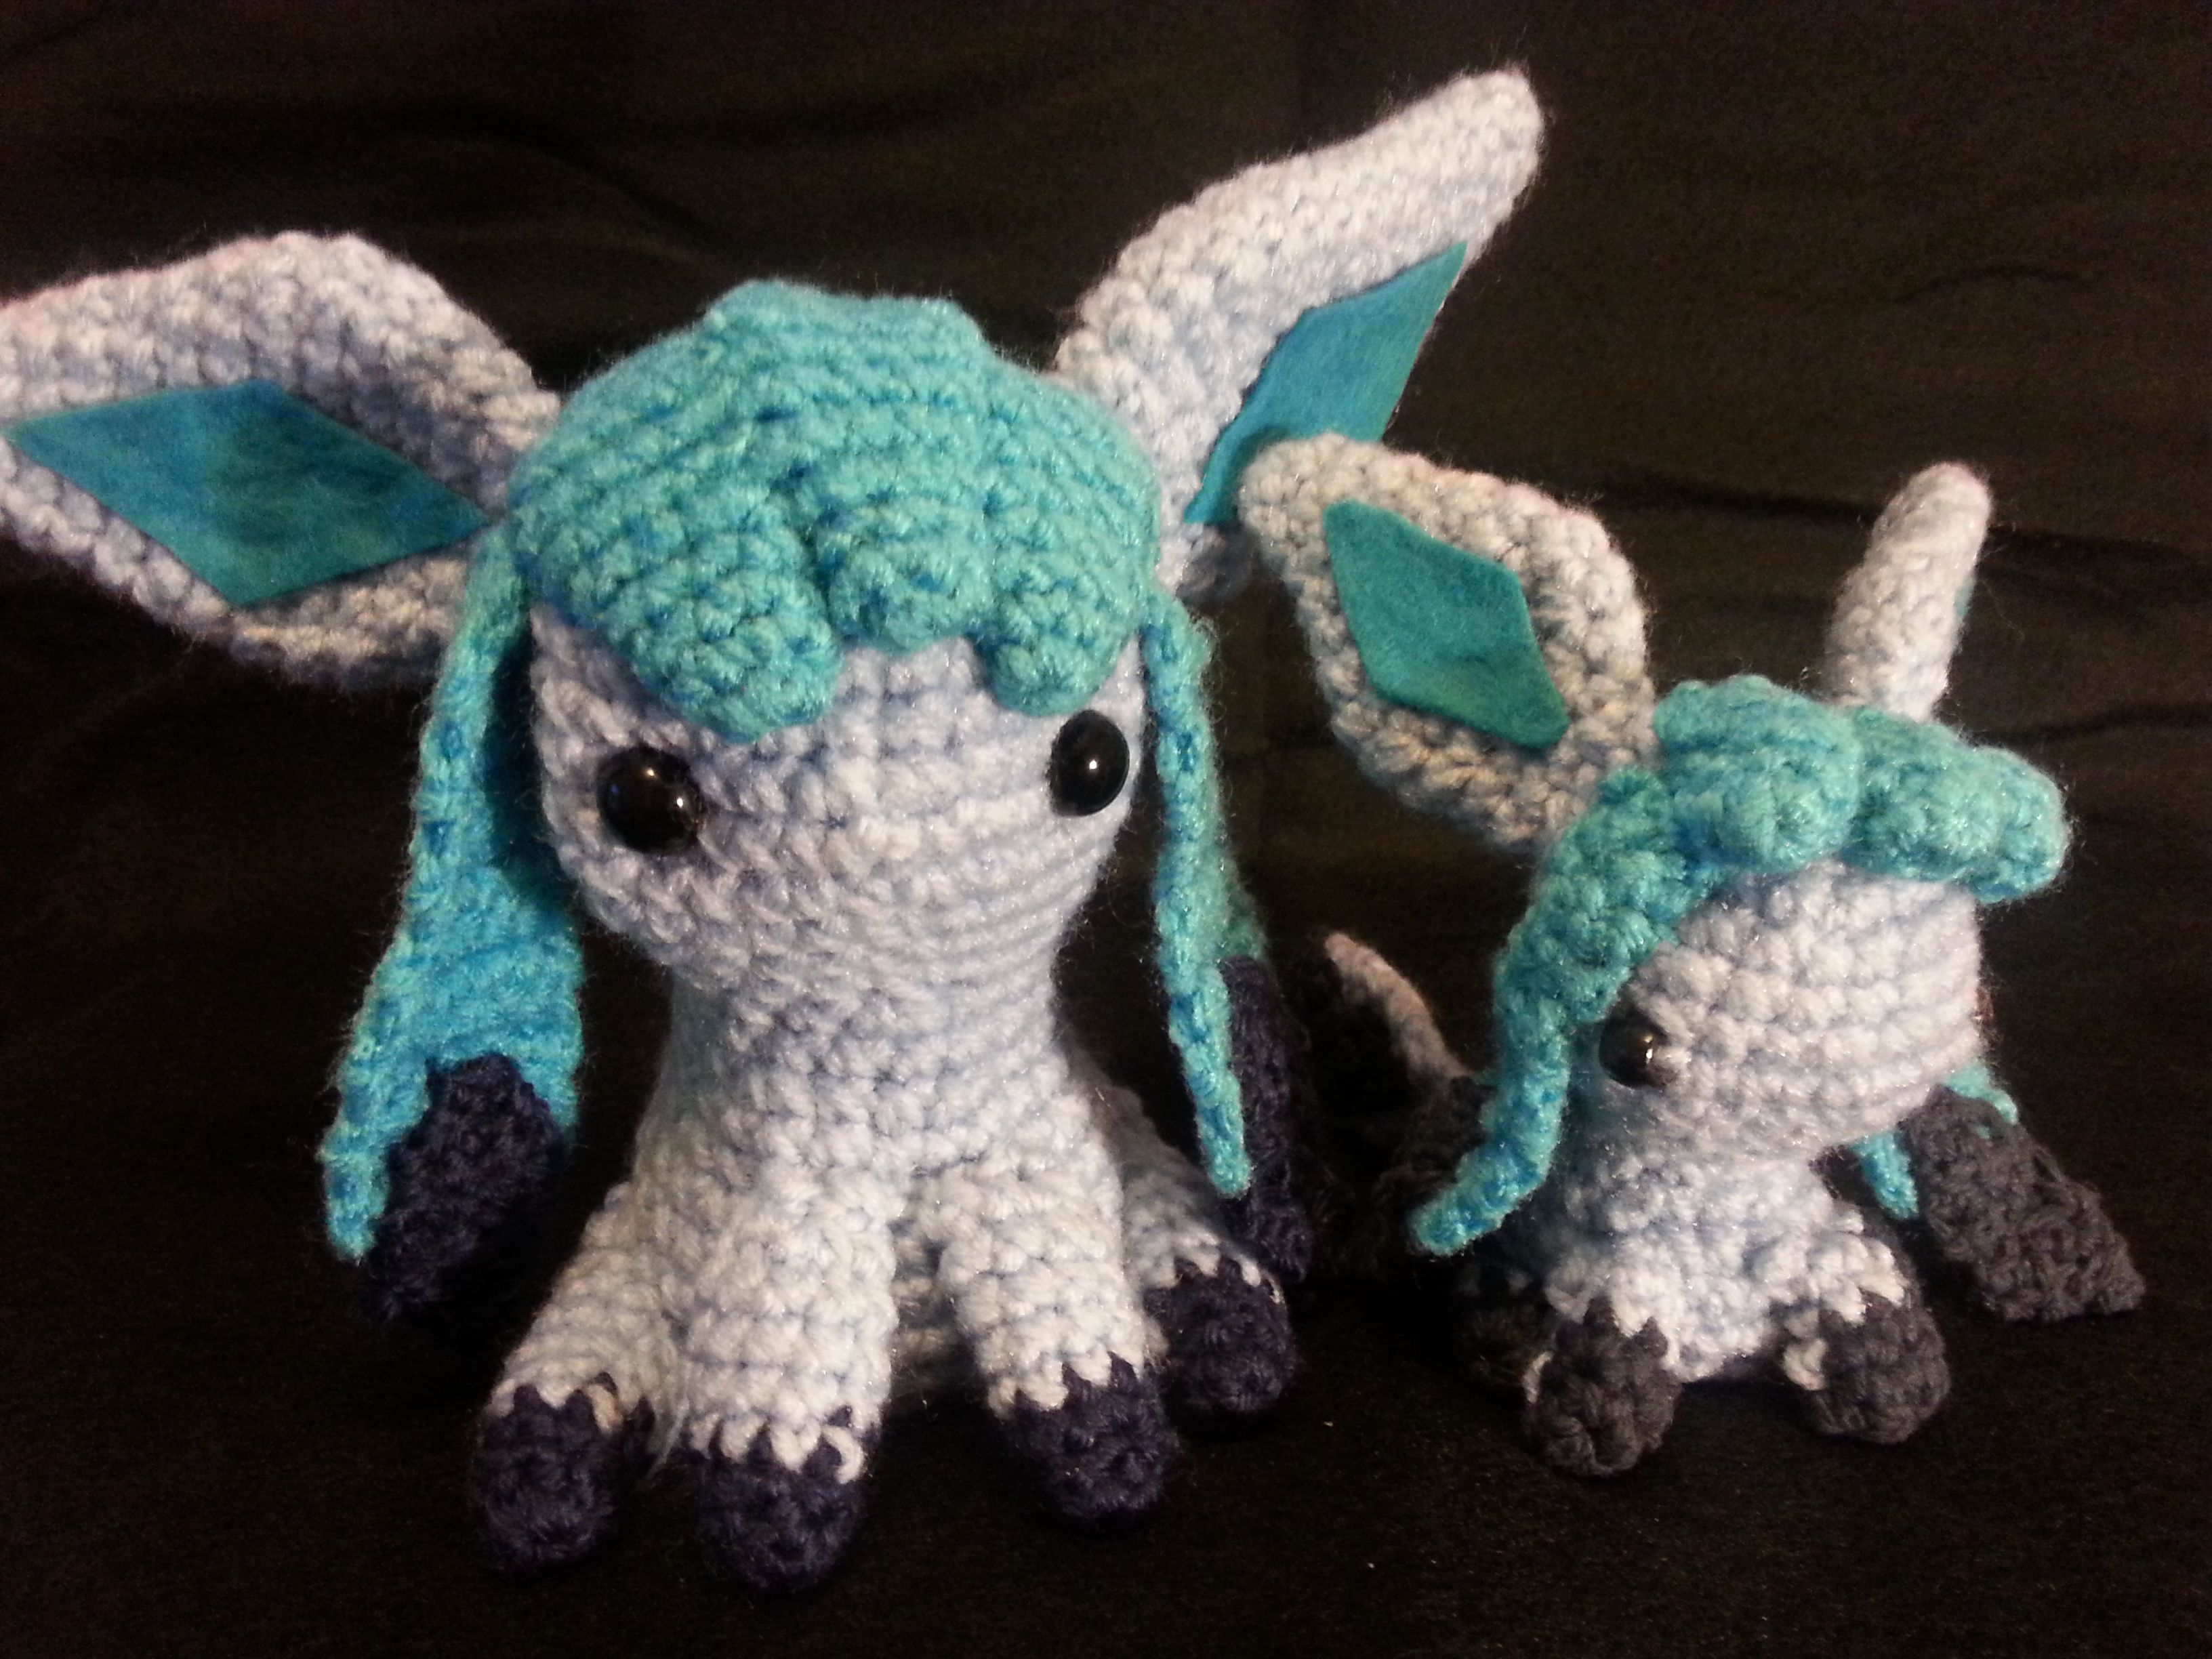 Mini and normal sized Glaceon amigurumi! These guys were a nightmare with all the little added details but I think they turned out great.